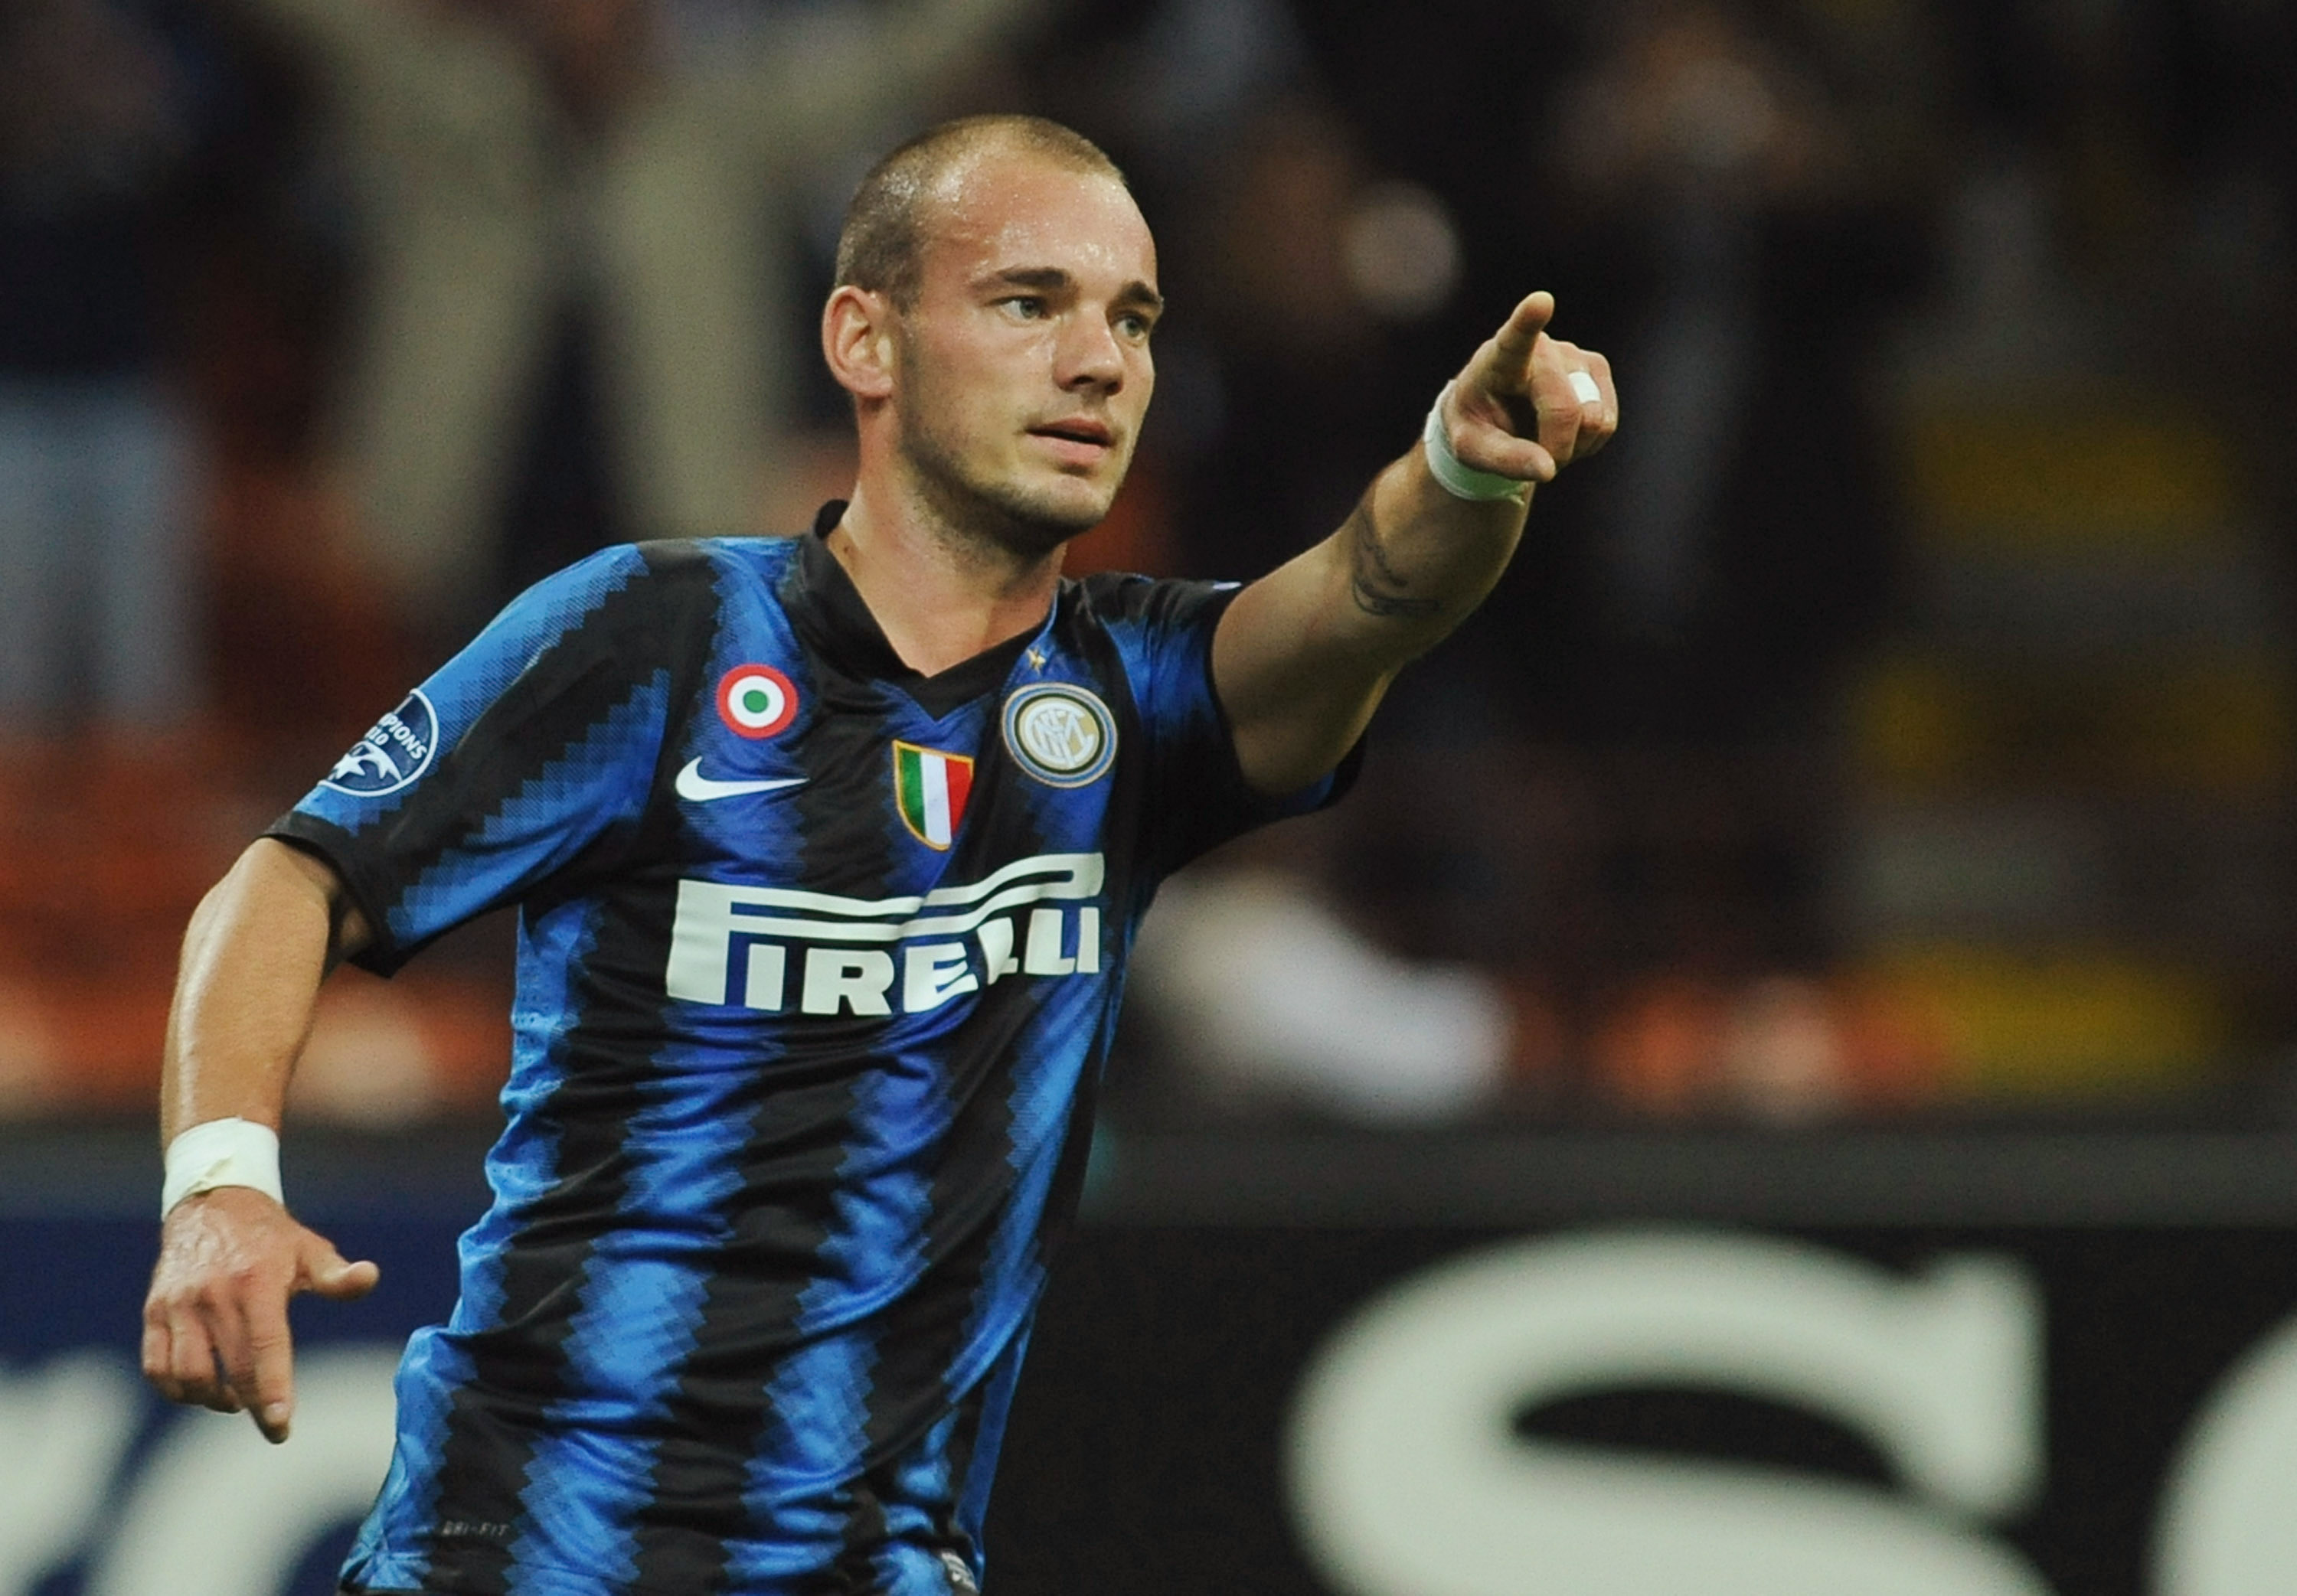 MILAN, ITALY - SEPTEMBER 29:  Wesley Sneijder of FC Internazionale Milano celebrates his goal during the UEFA Champions League group A match between FC Internazionale Milano and SV Werder Bremen at Stadio Giuseppe Meazza on September 29, 2010 in Milan, It